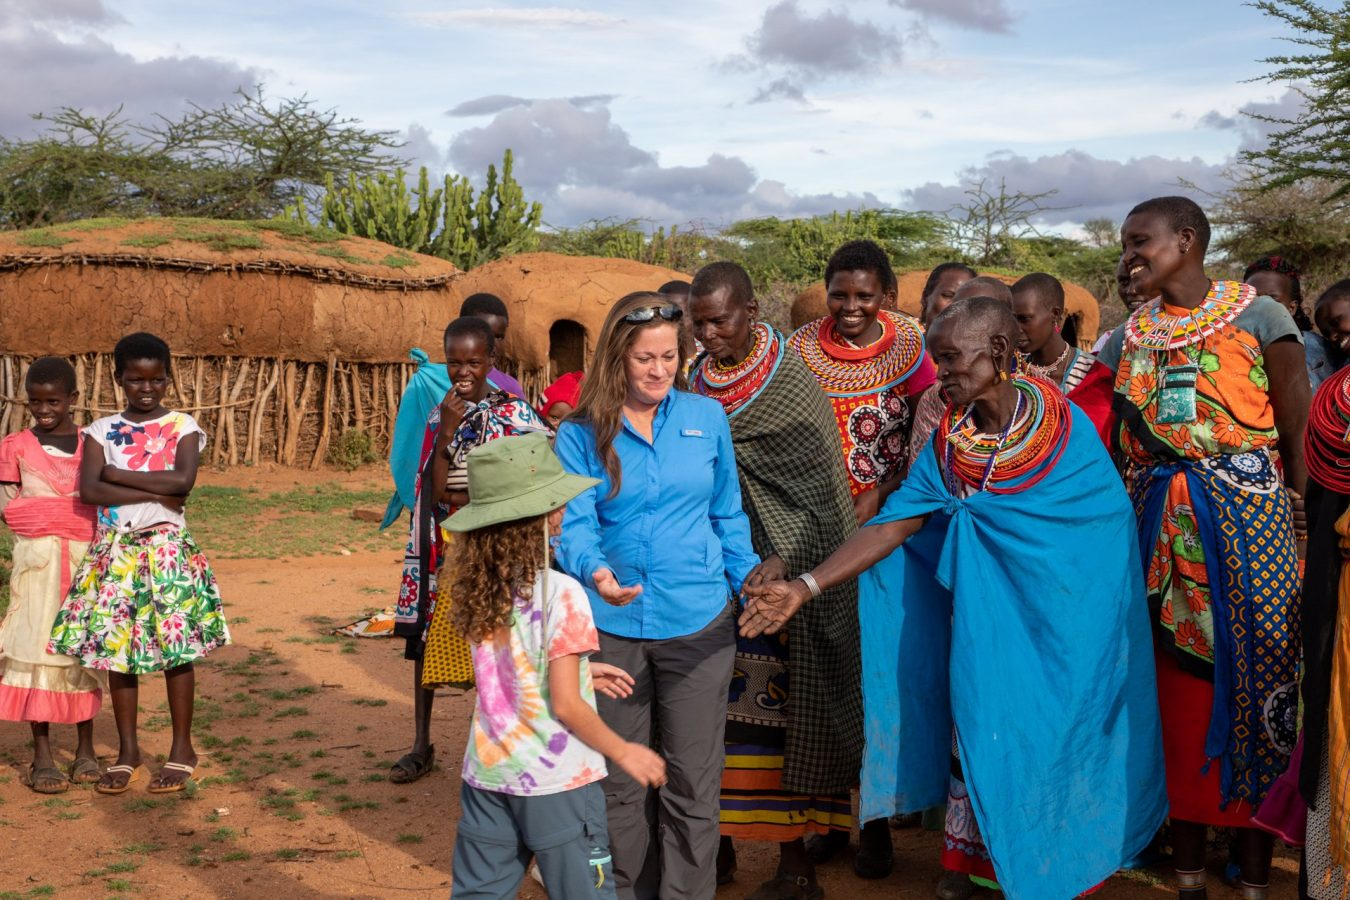 the ladies welcoming the girls to their village